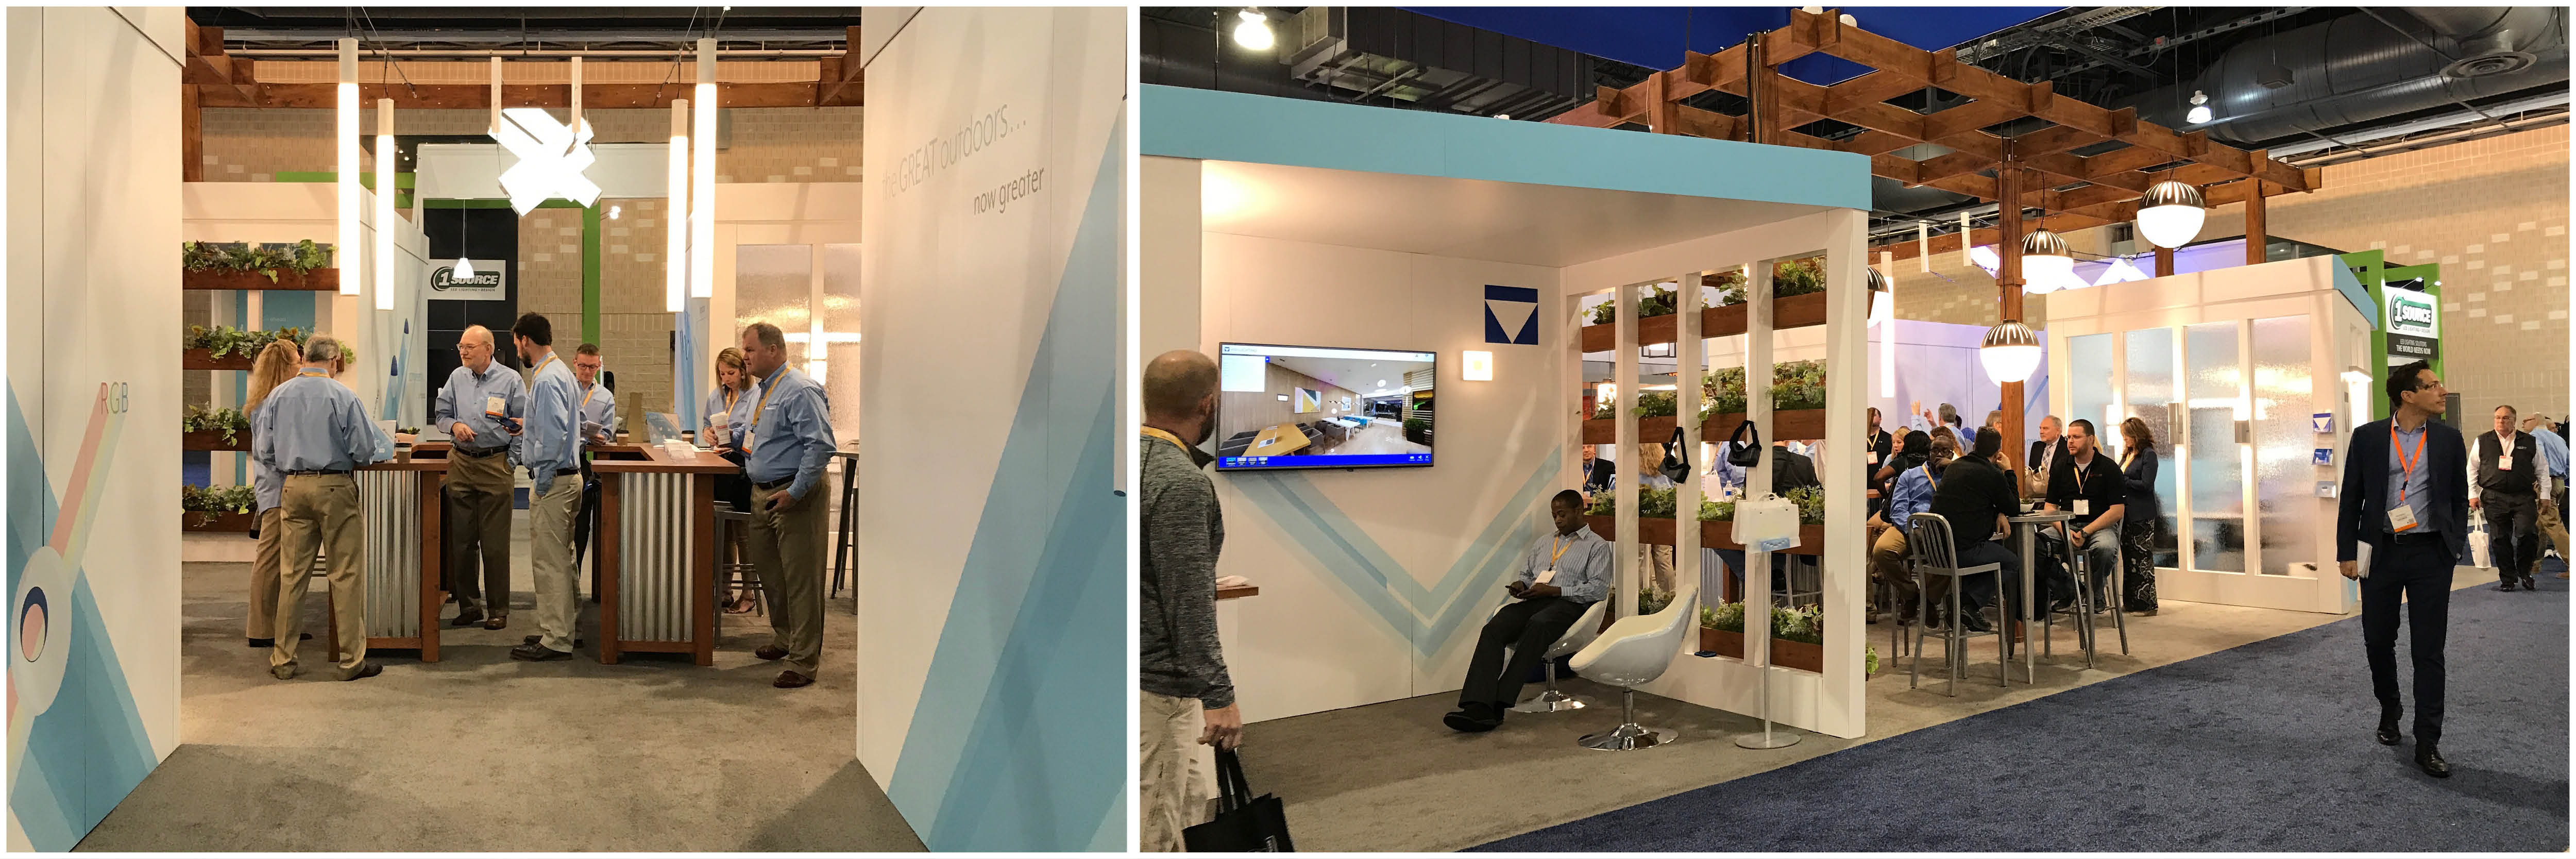 Our Visa Lighting teams had a great time showing off tunable LED lighting while at 2017 Lightfair.